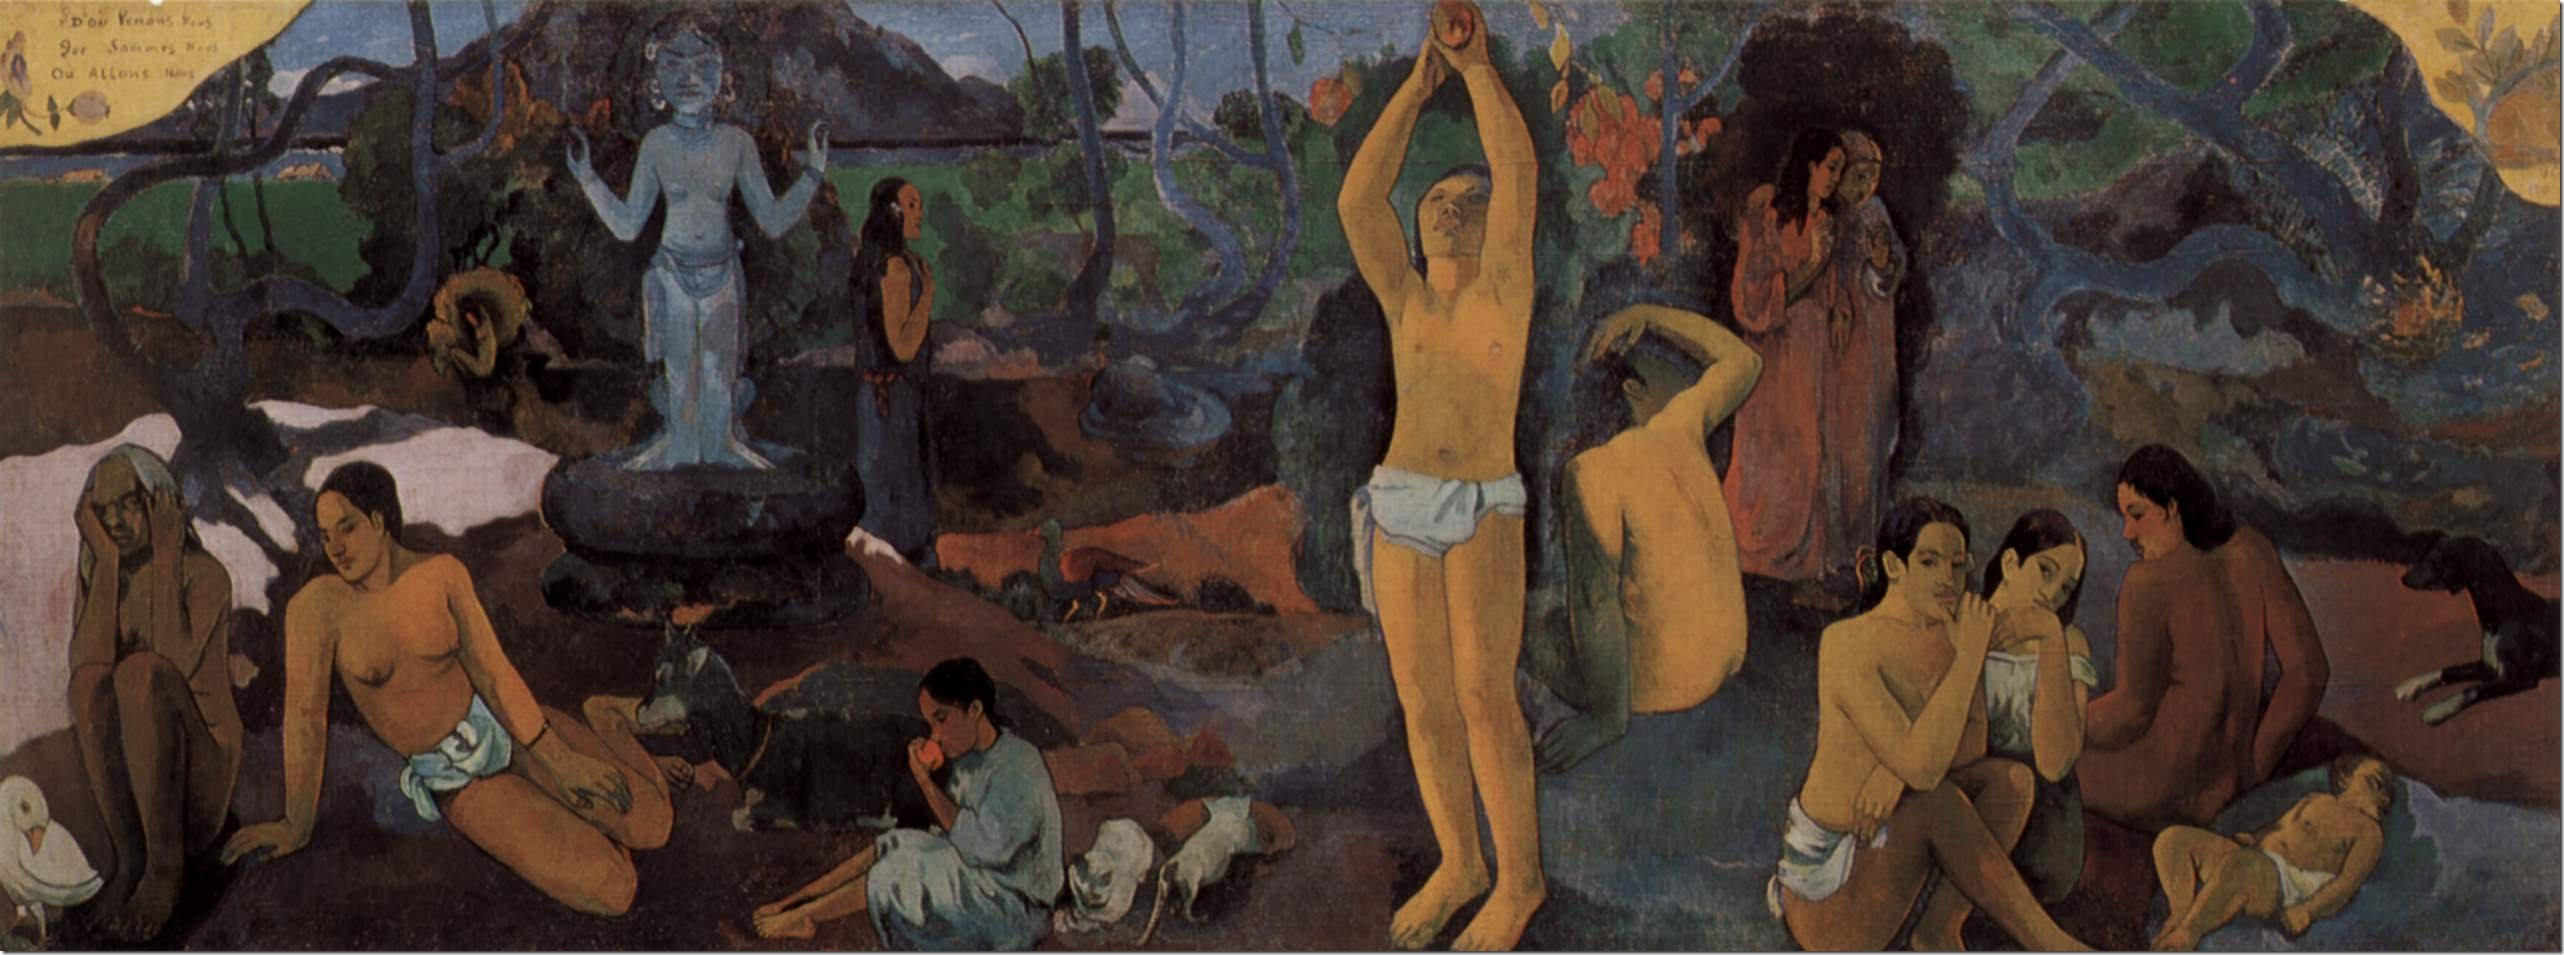 Paul_Gauguin_142